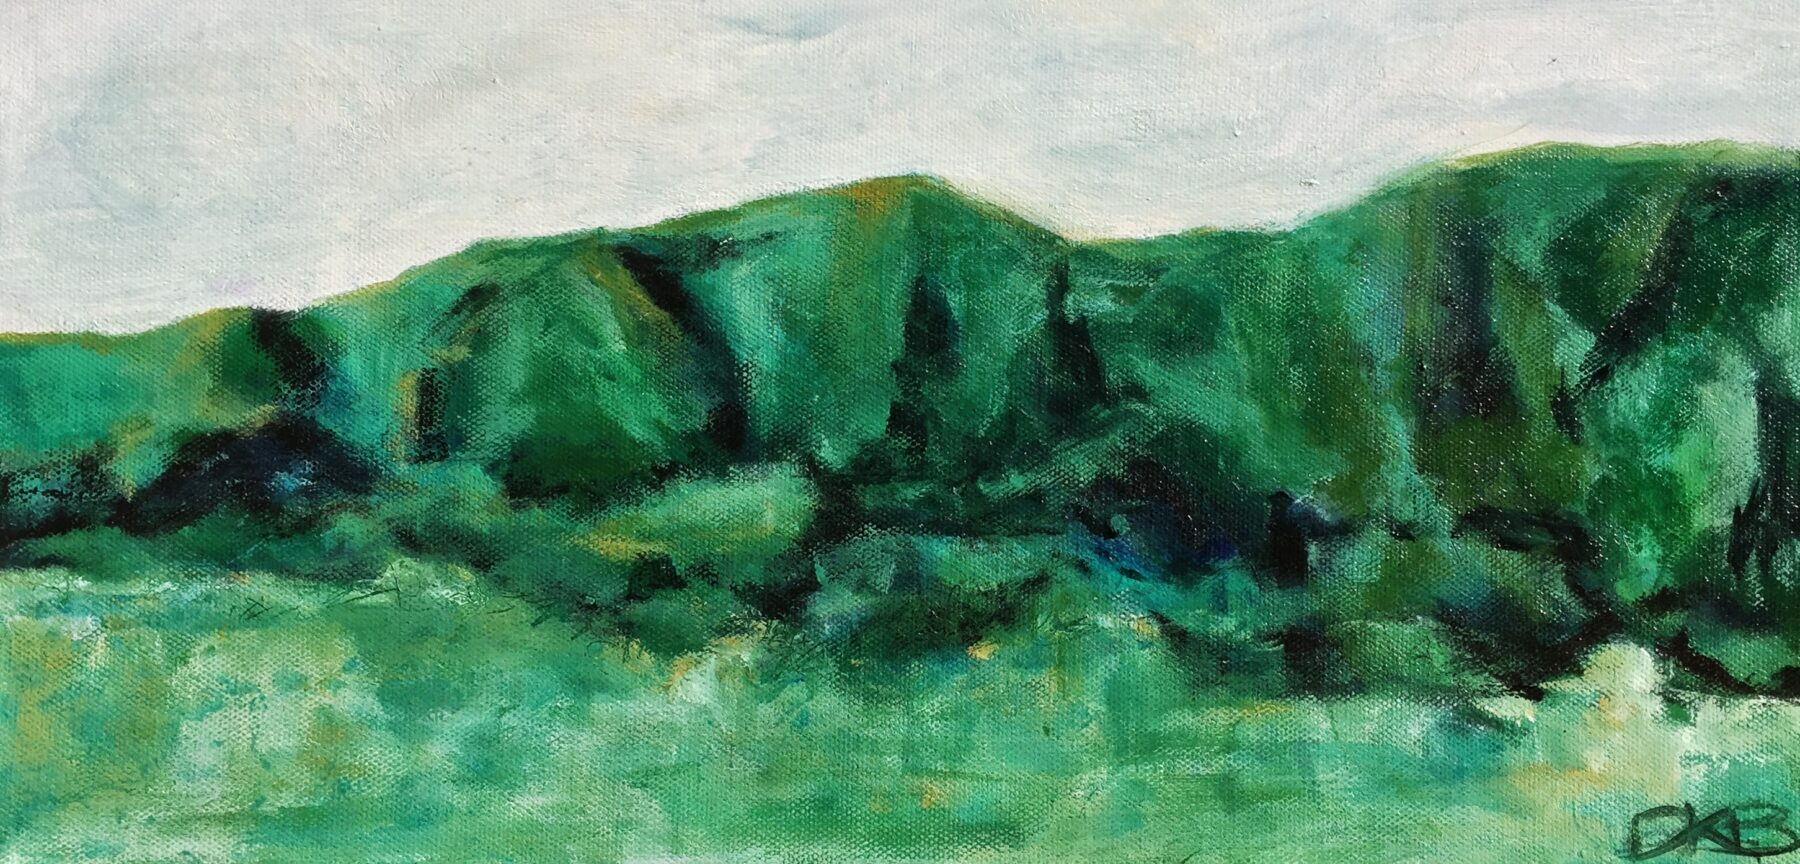 Untitled Landscape  Acrylic on Canvas 200mm x 410mm   $190